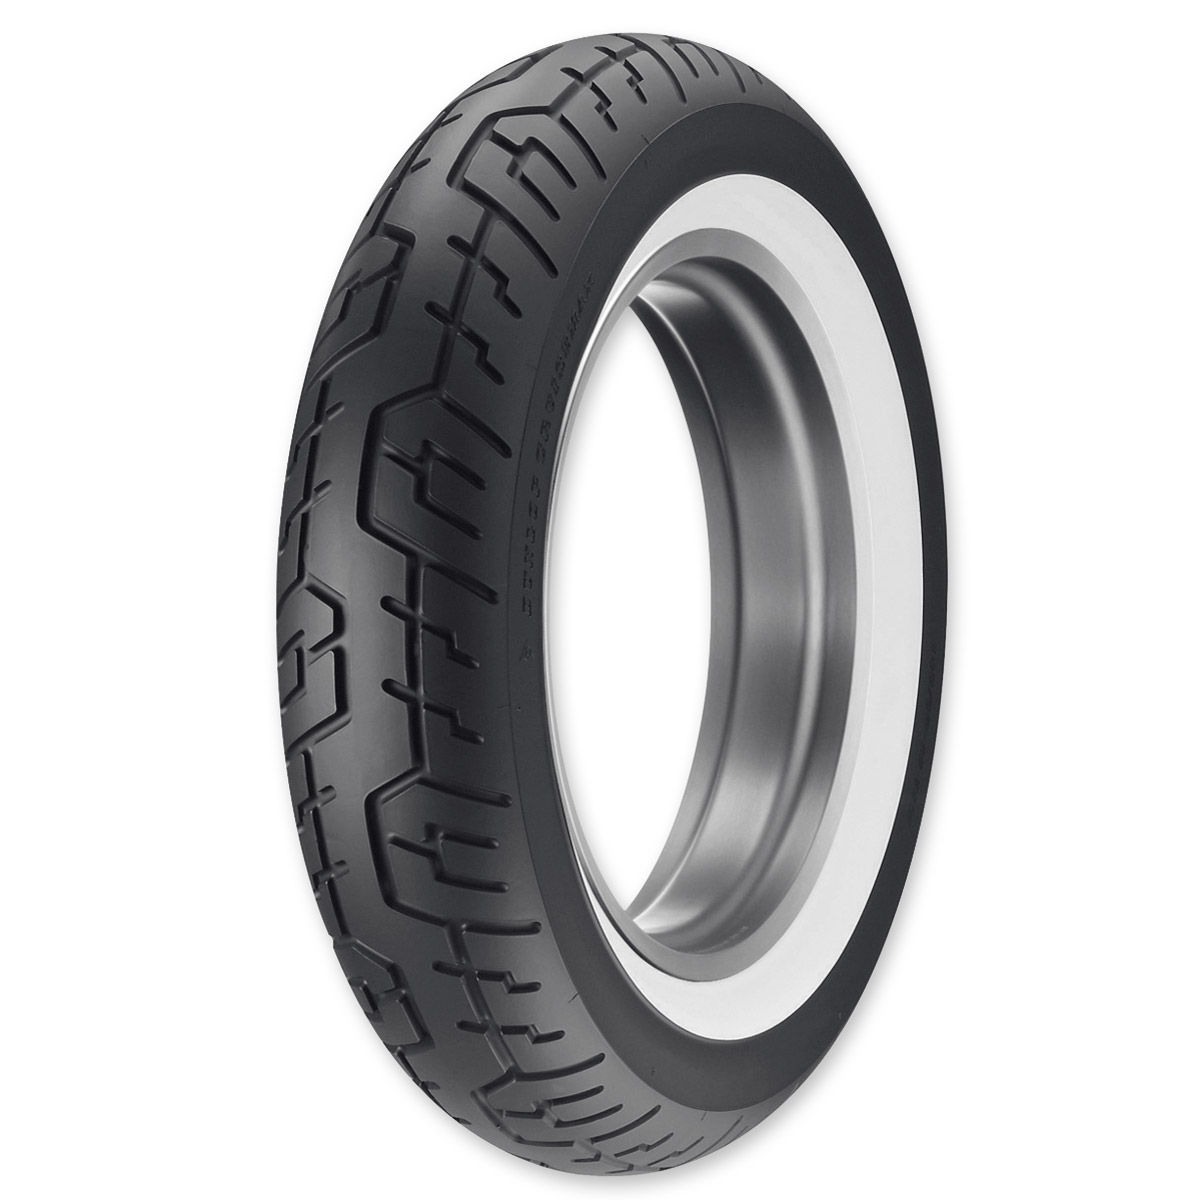 Dunlop CruiseMax 150/80-16 Wide Whitewall Rear Tire